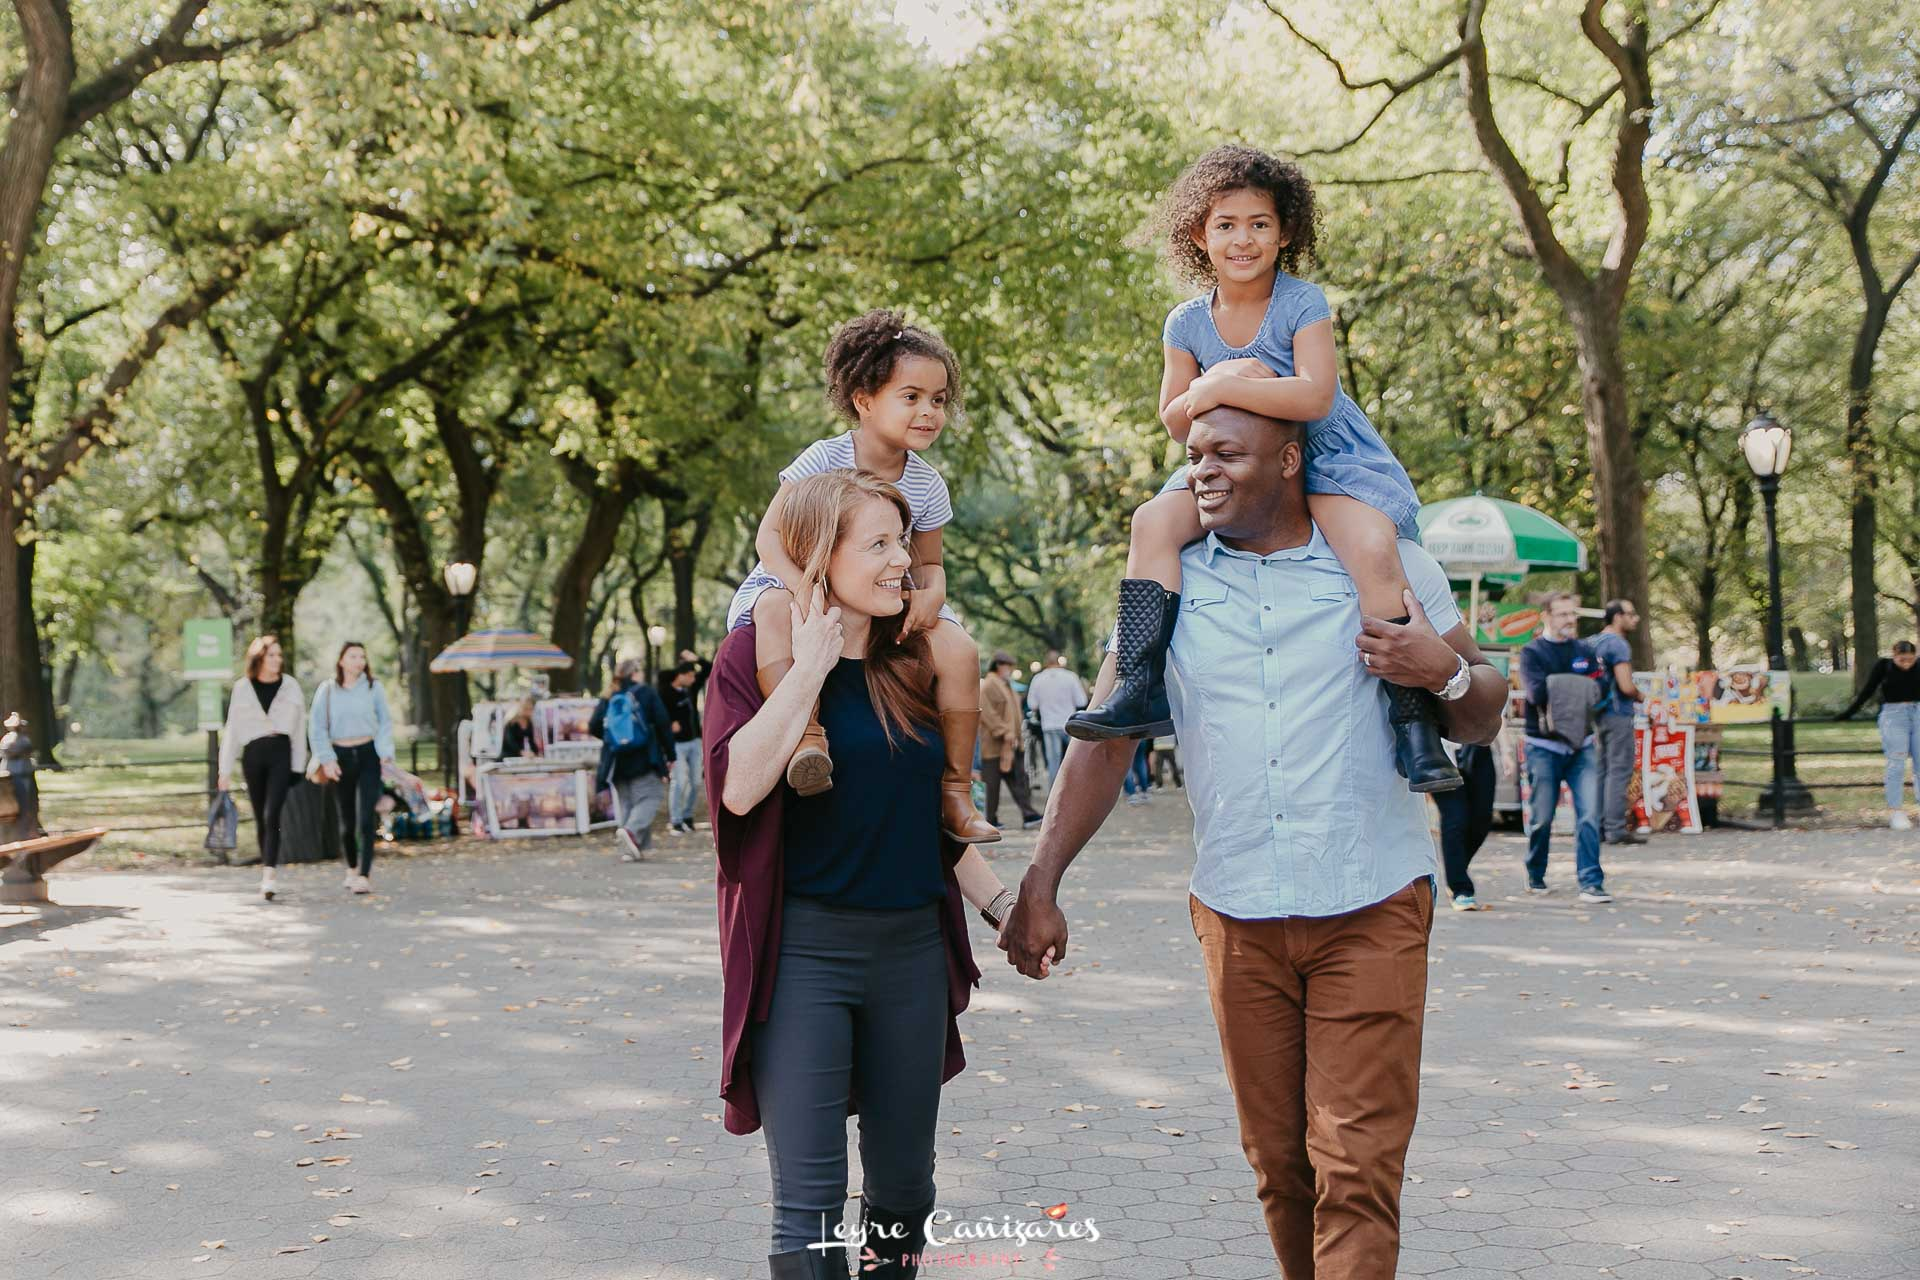 family photo shoot in The Mall, central park, nyc